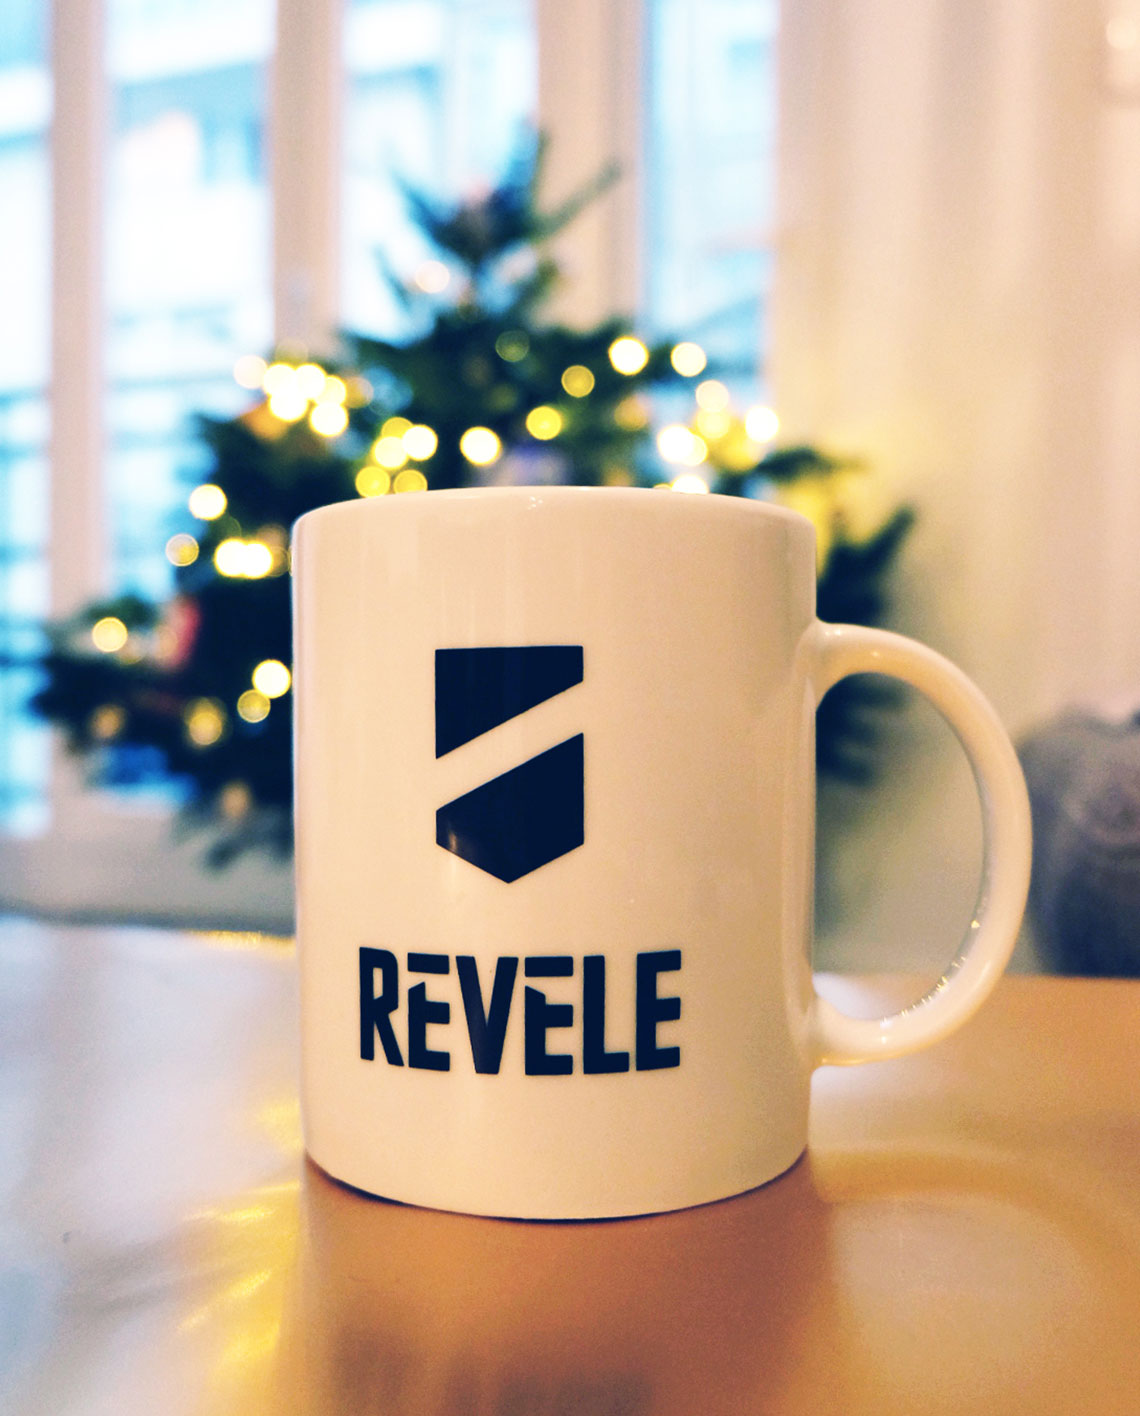 Révèle mug for coffee or tea